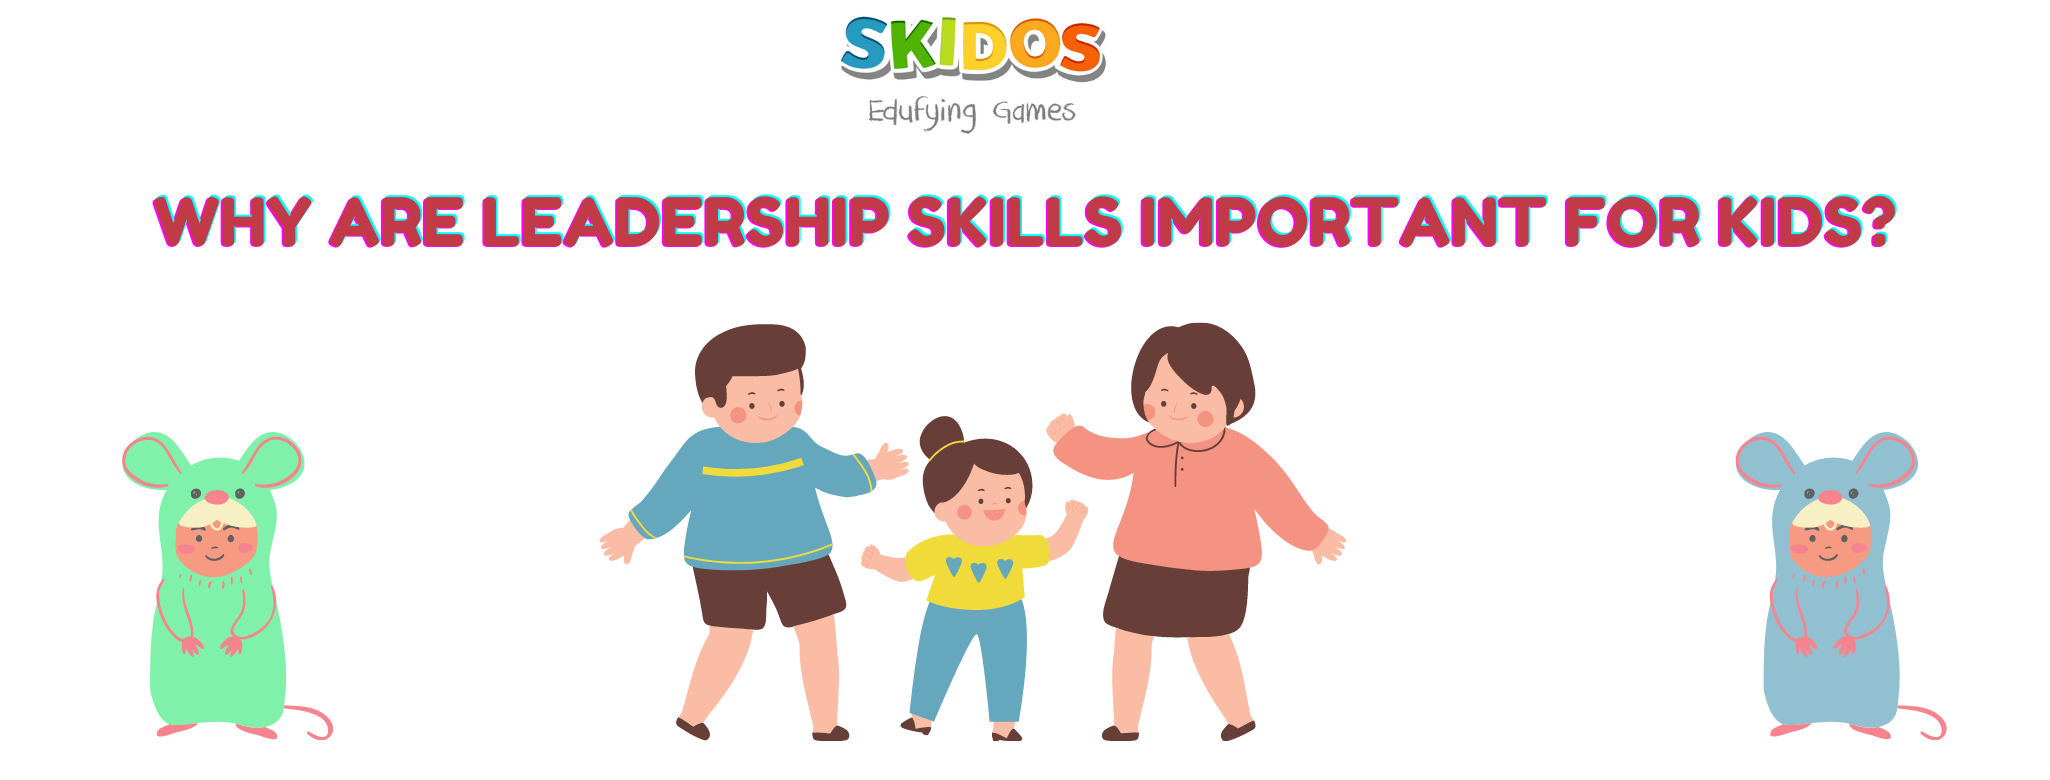 Why are leadership skills important for kids